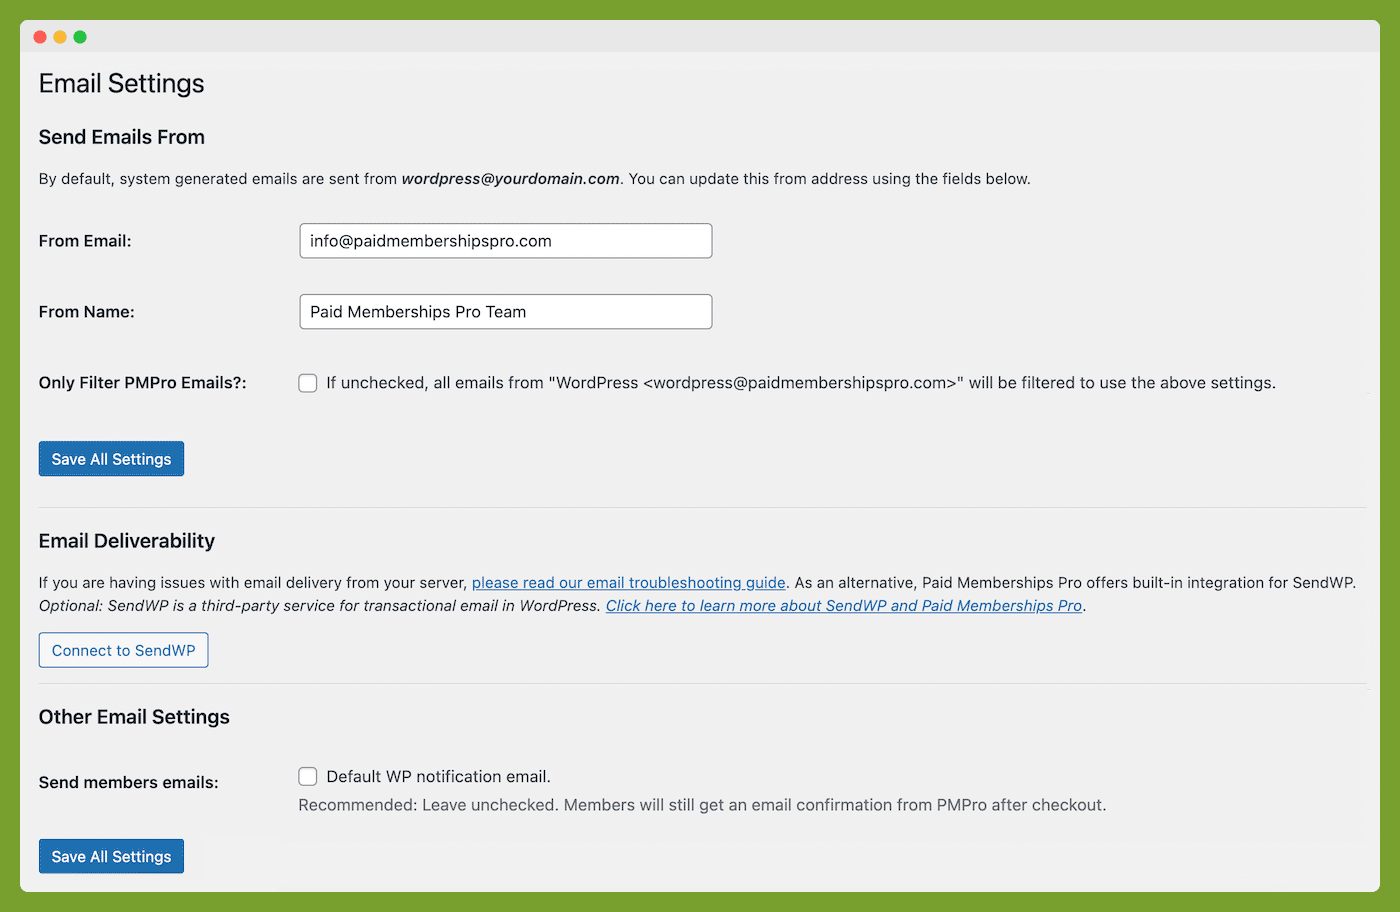 Email Settings for Paid Memberships Pro